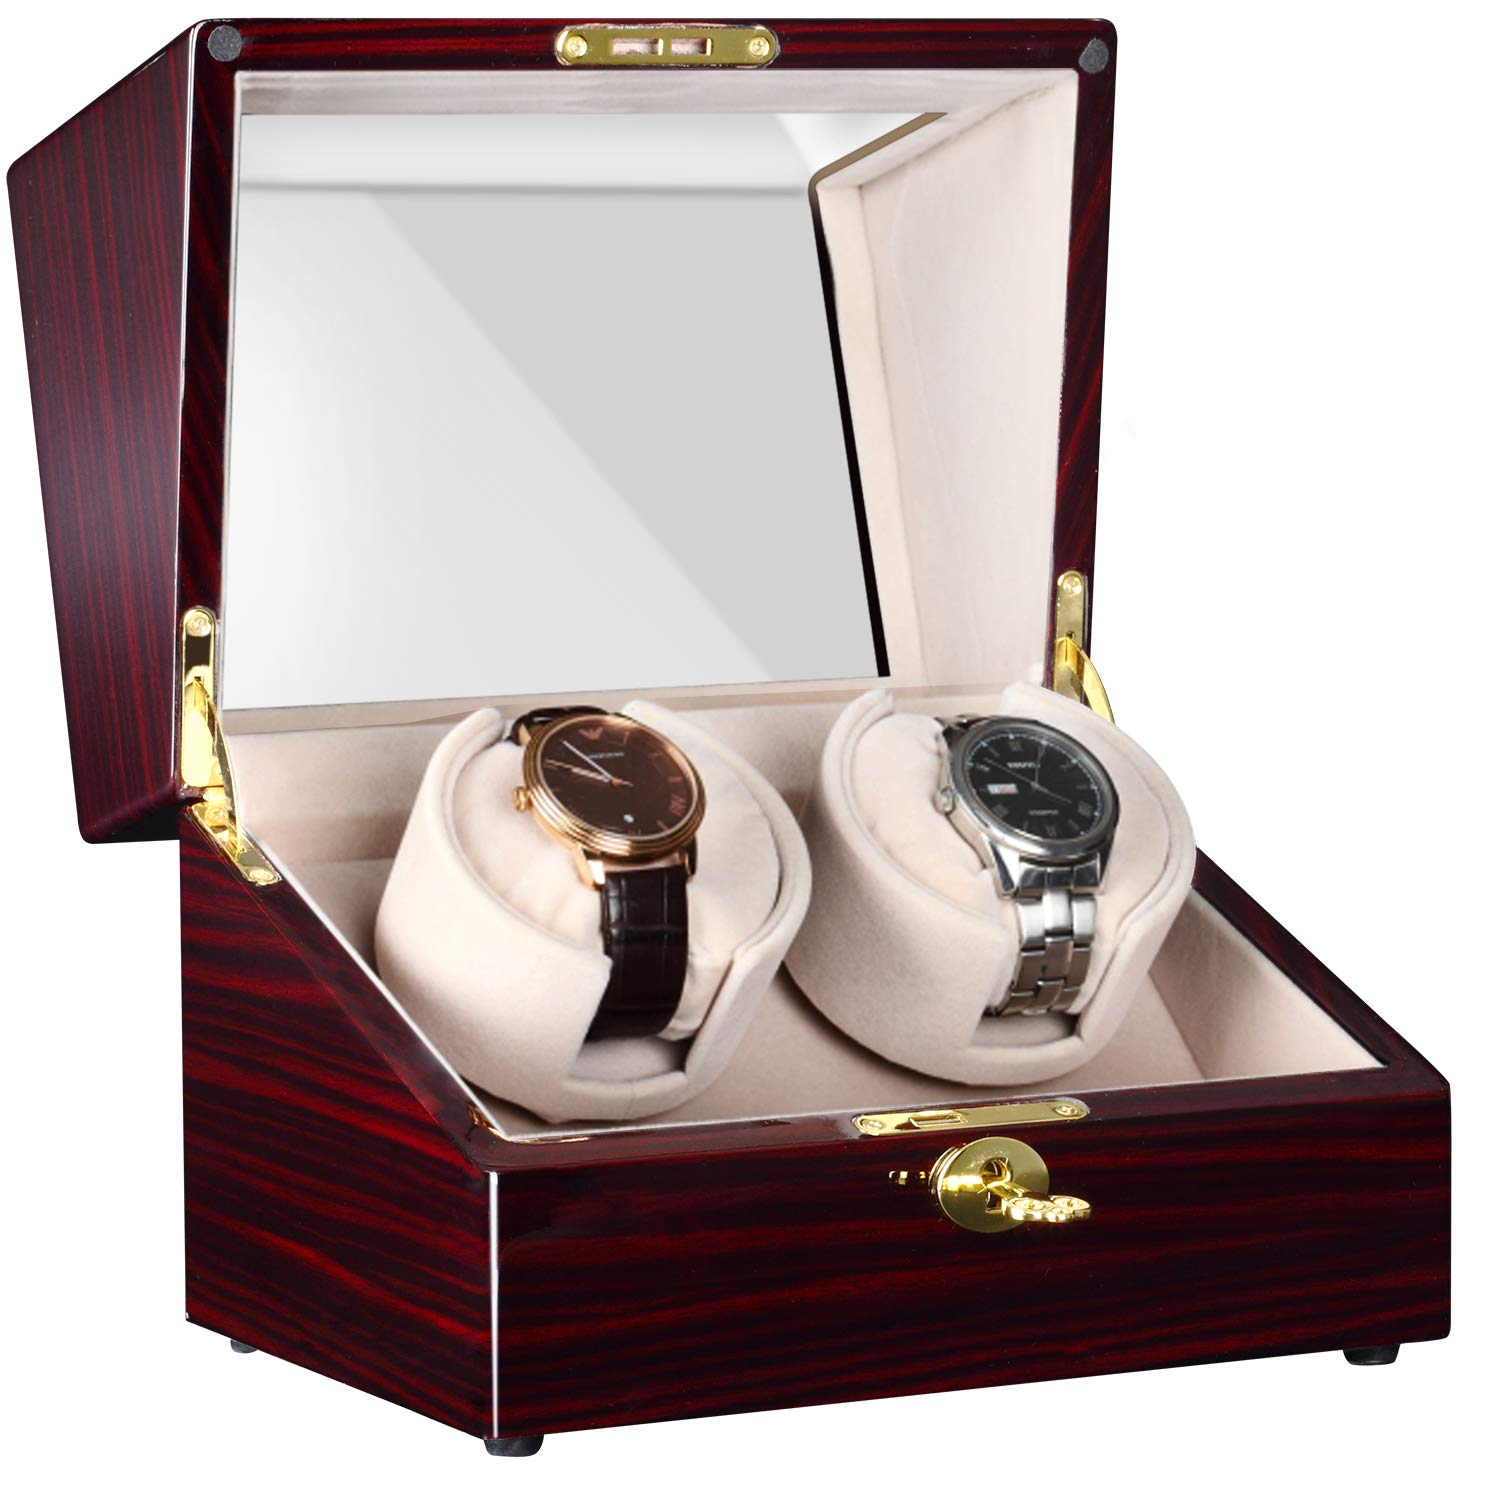 CHIYODA Automatic Double Watch Winder with Two Quiet Mabuchi Motors, LCD Touch Control by CHIYODA